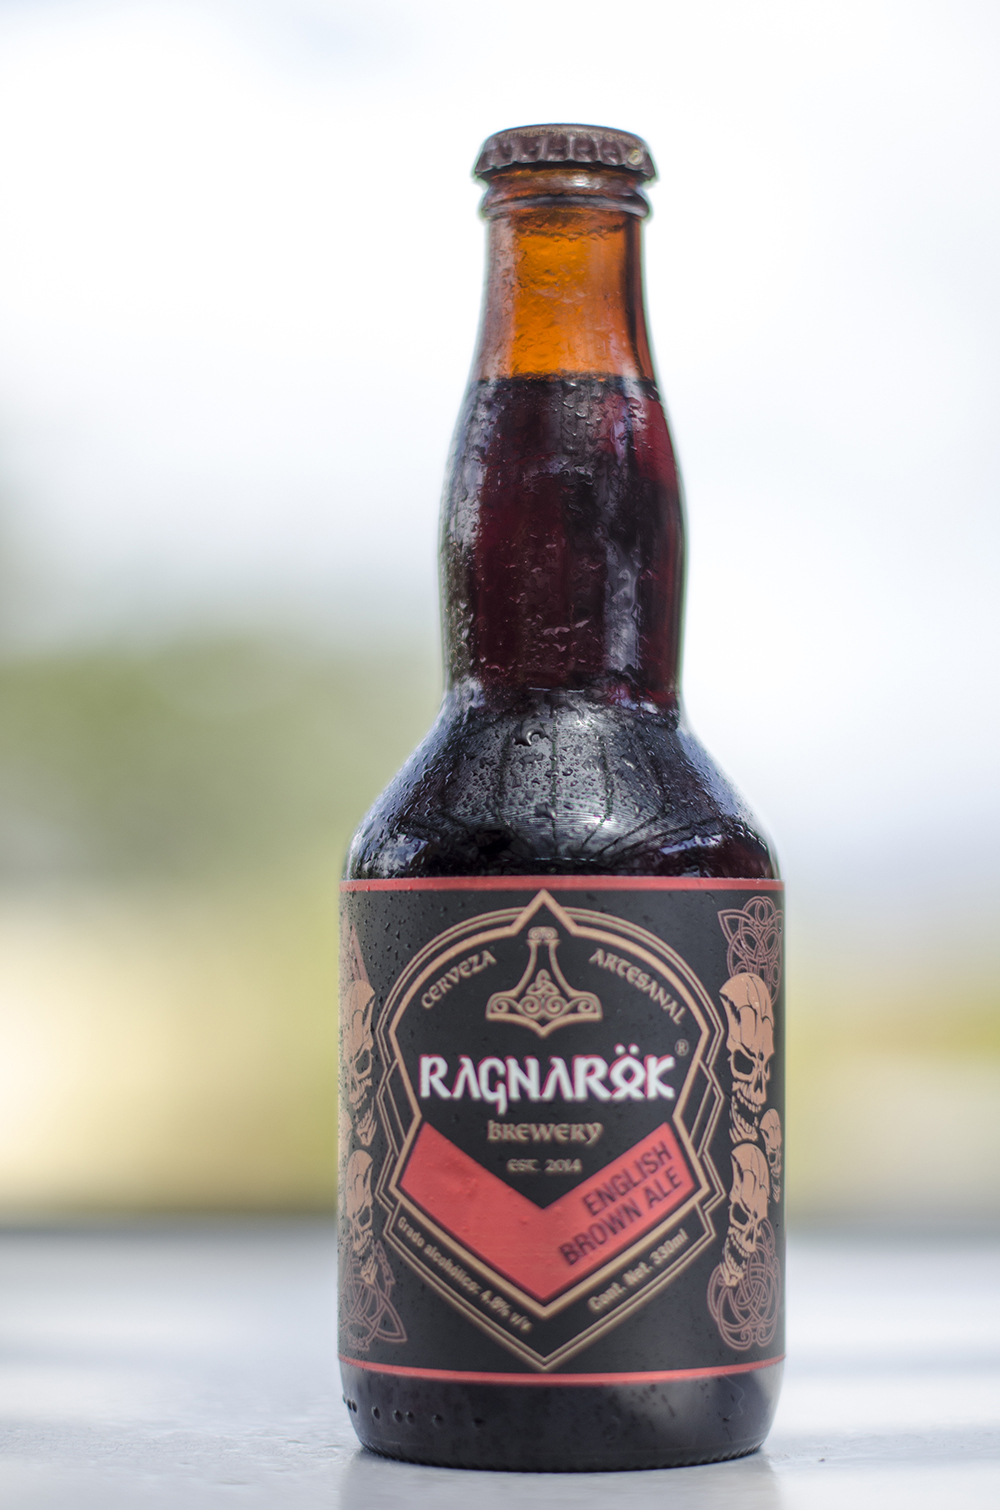 Ragnarök Brewery   Brown Ale  4,8%